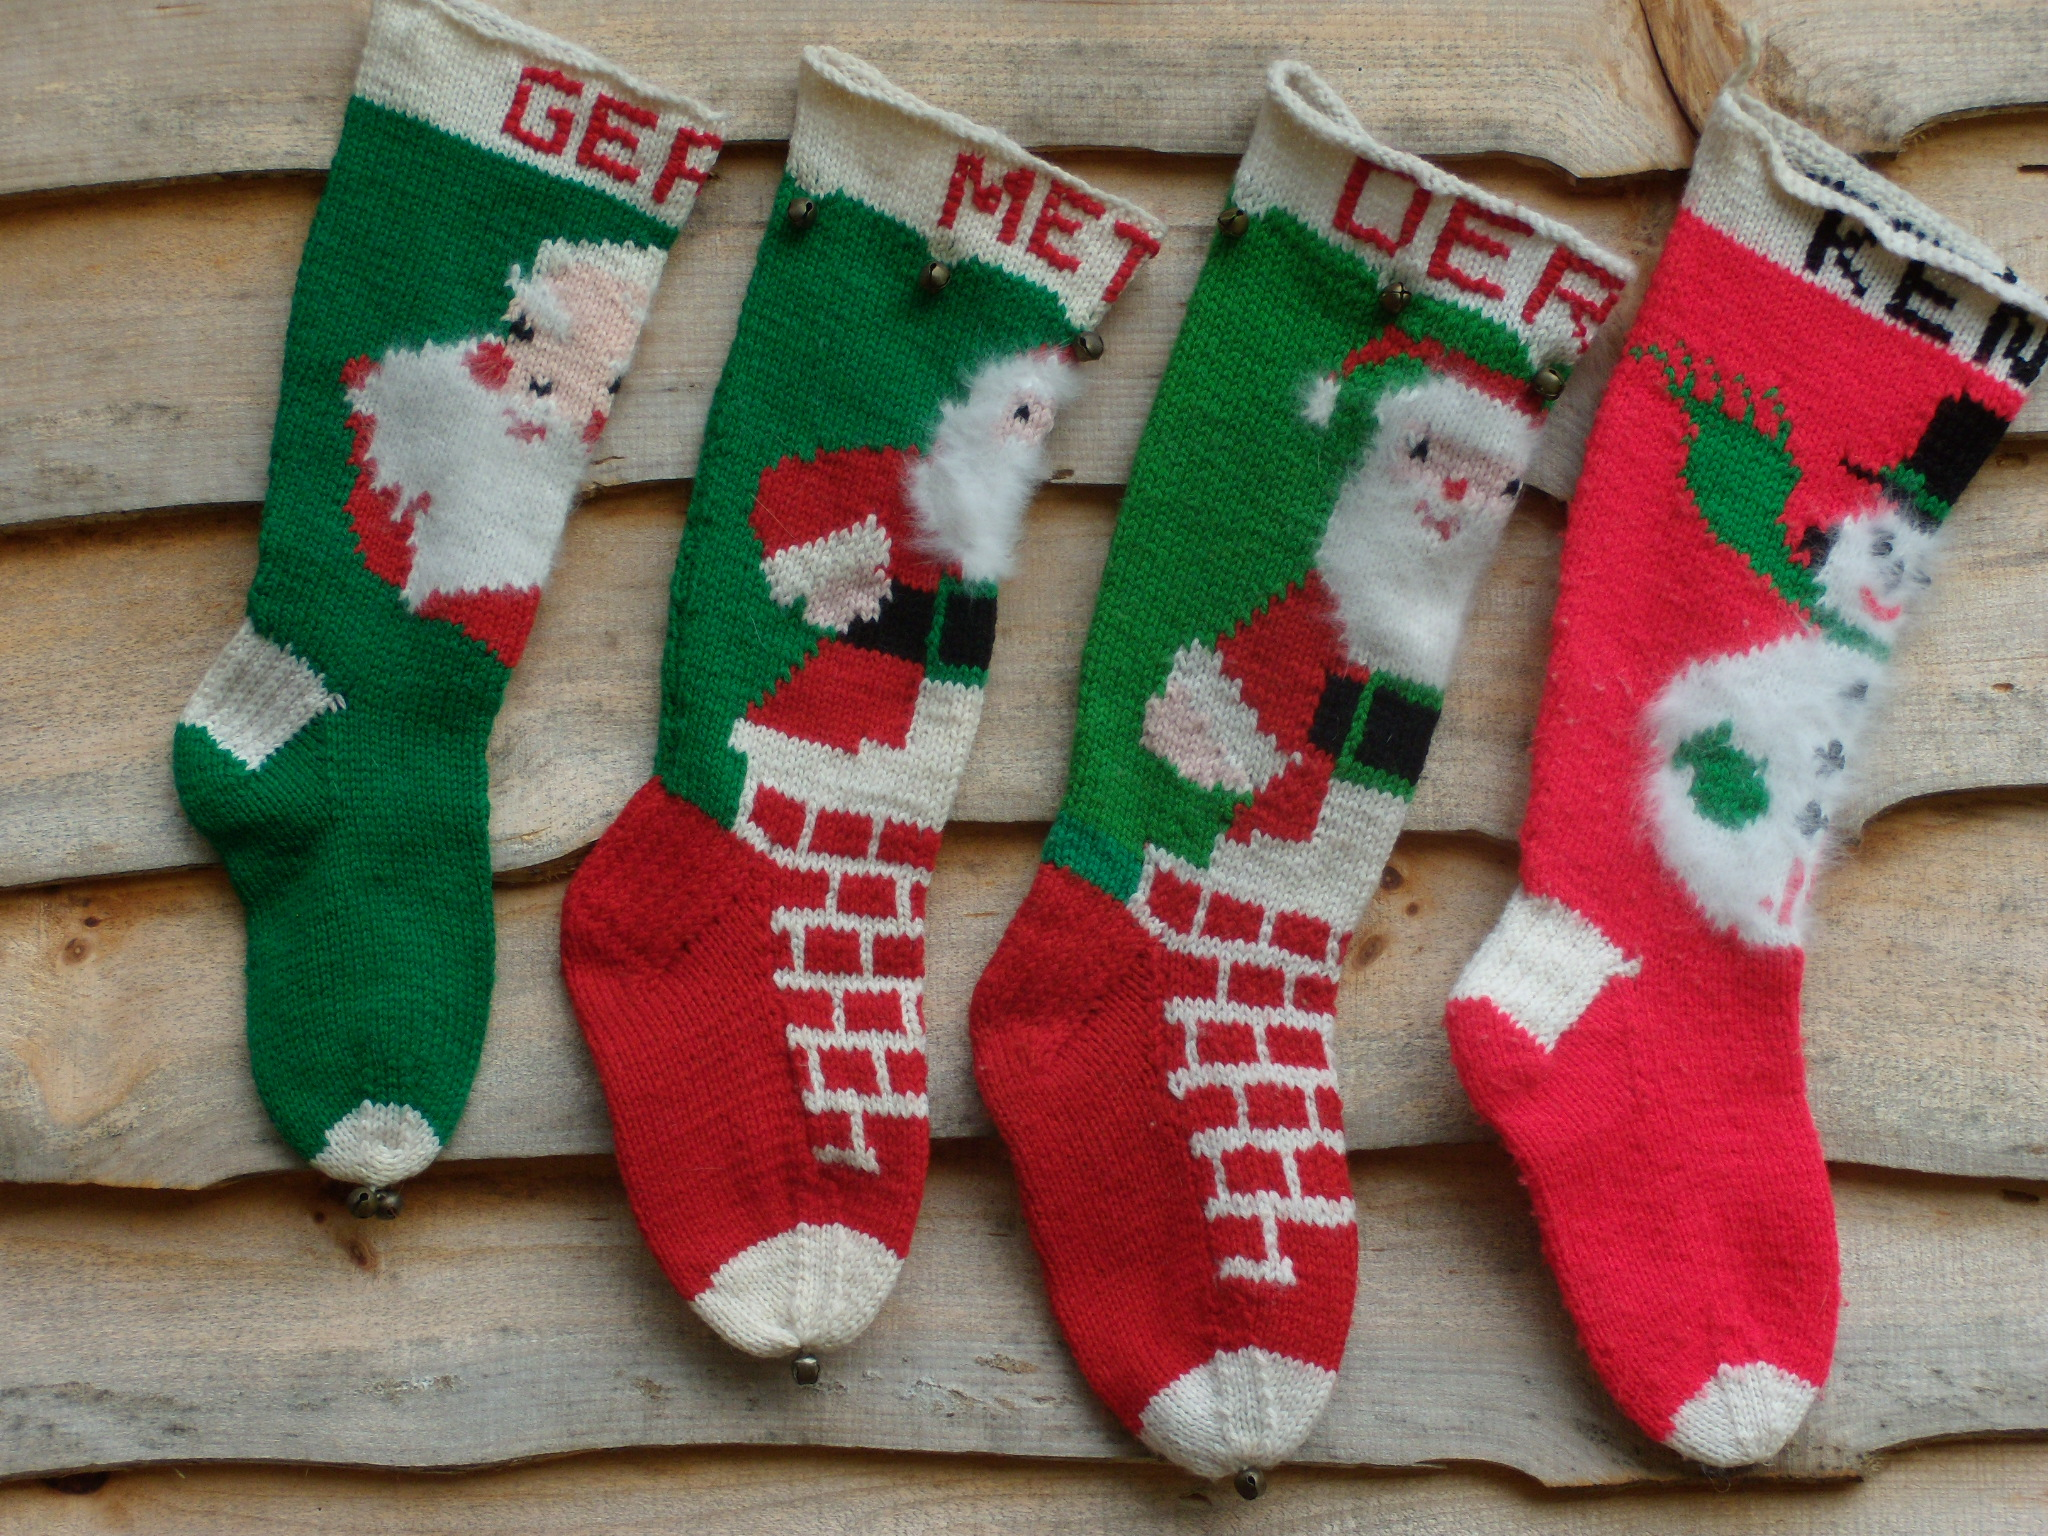 7ff299c35ad Who Made Your Christmas Stockings  Halcyon Yarn Blog ... Halcyon Yarn